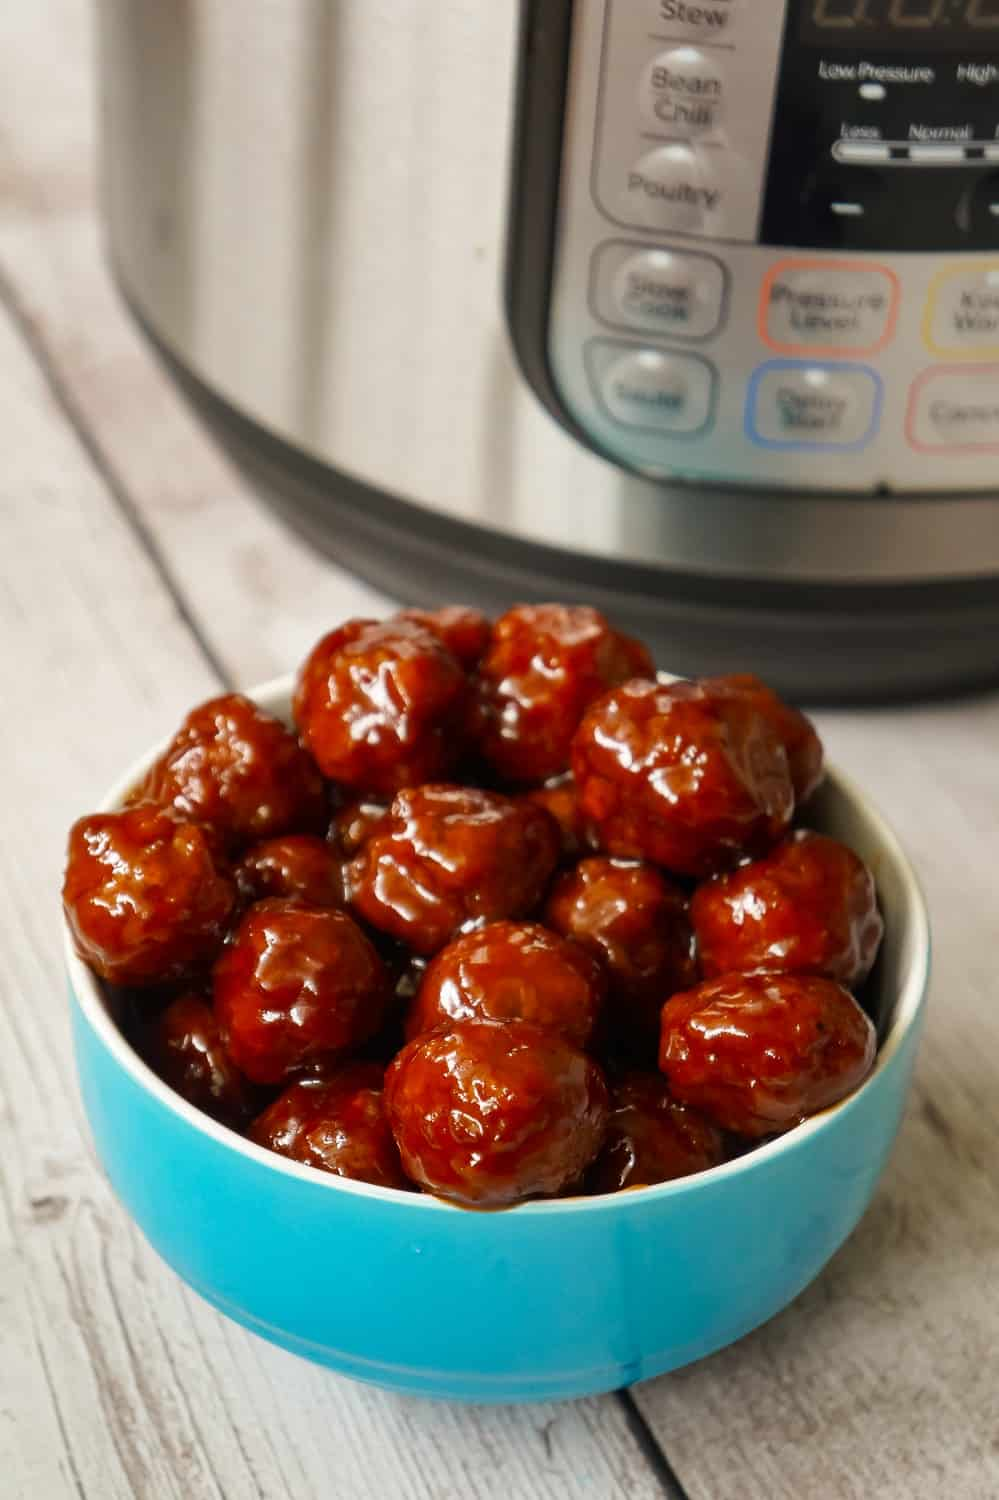 Instant Pot Grape Jelly Meatballs are the perfect party food. These tasty meatballs are coated in Welsh's Grape Jelly and Sweet Baby Ray's Hickory and Brown Sugar BBQ Sauce.